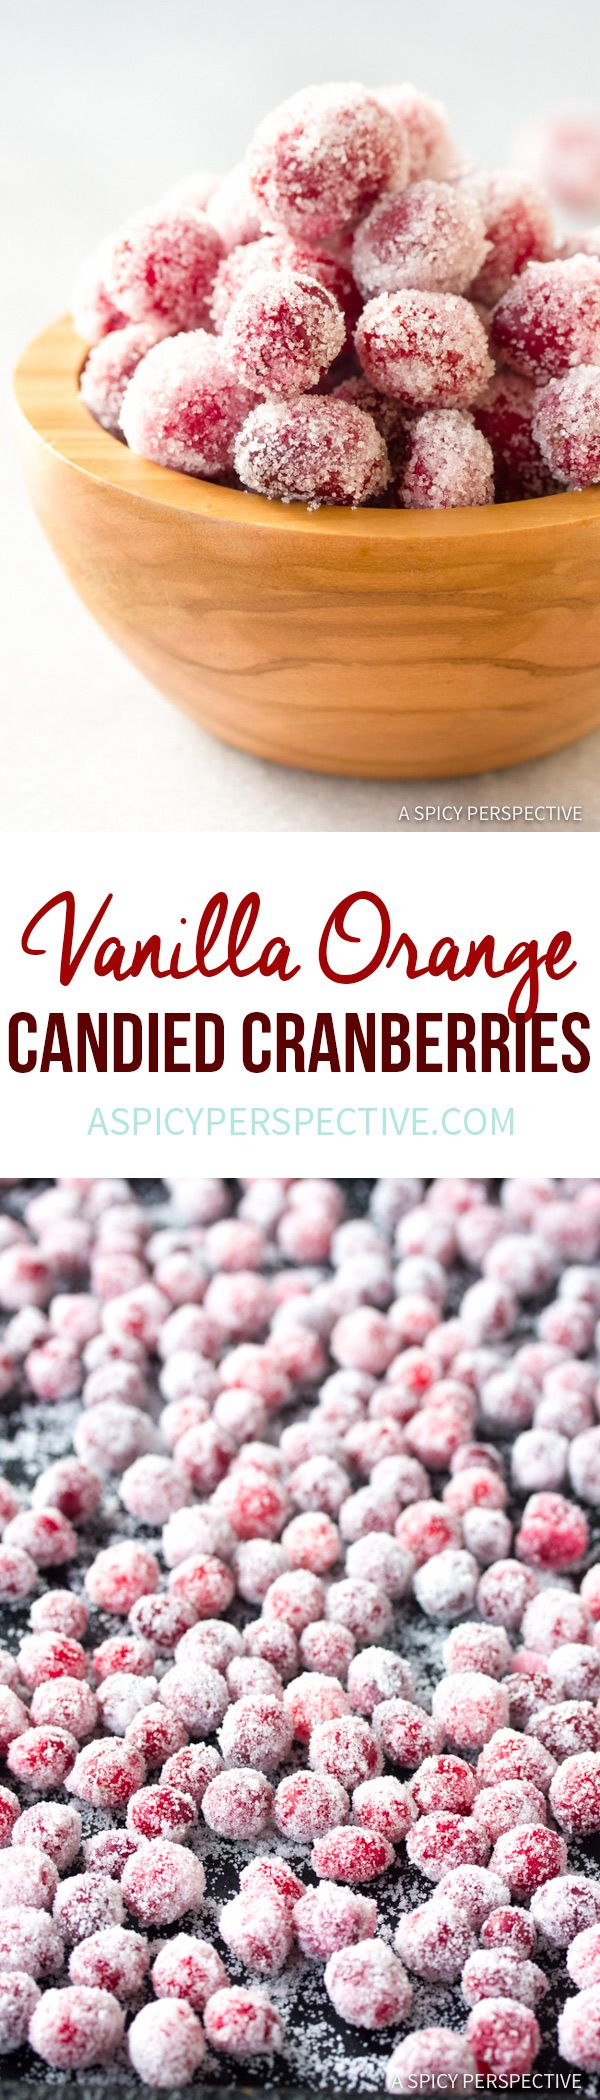 Holiday Vanilla Orange Candied Cranberries Recipe | ASpicyPerspective.com #thanksgiving #christmas via @spicyperspectiv